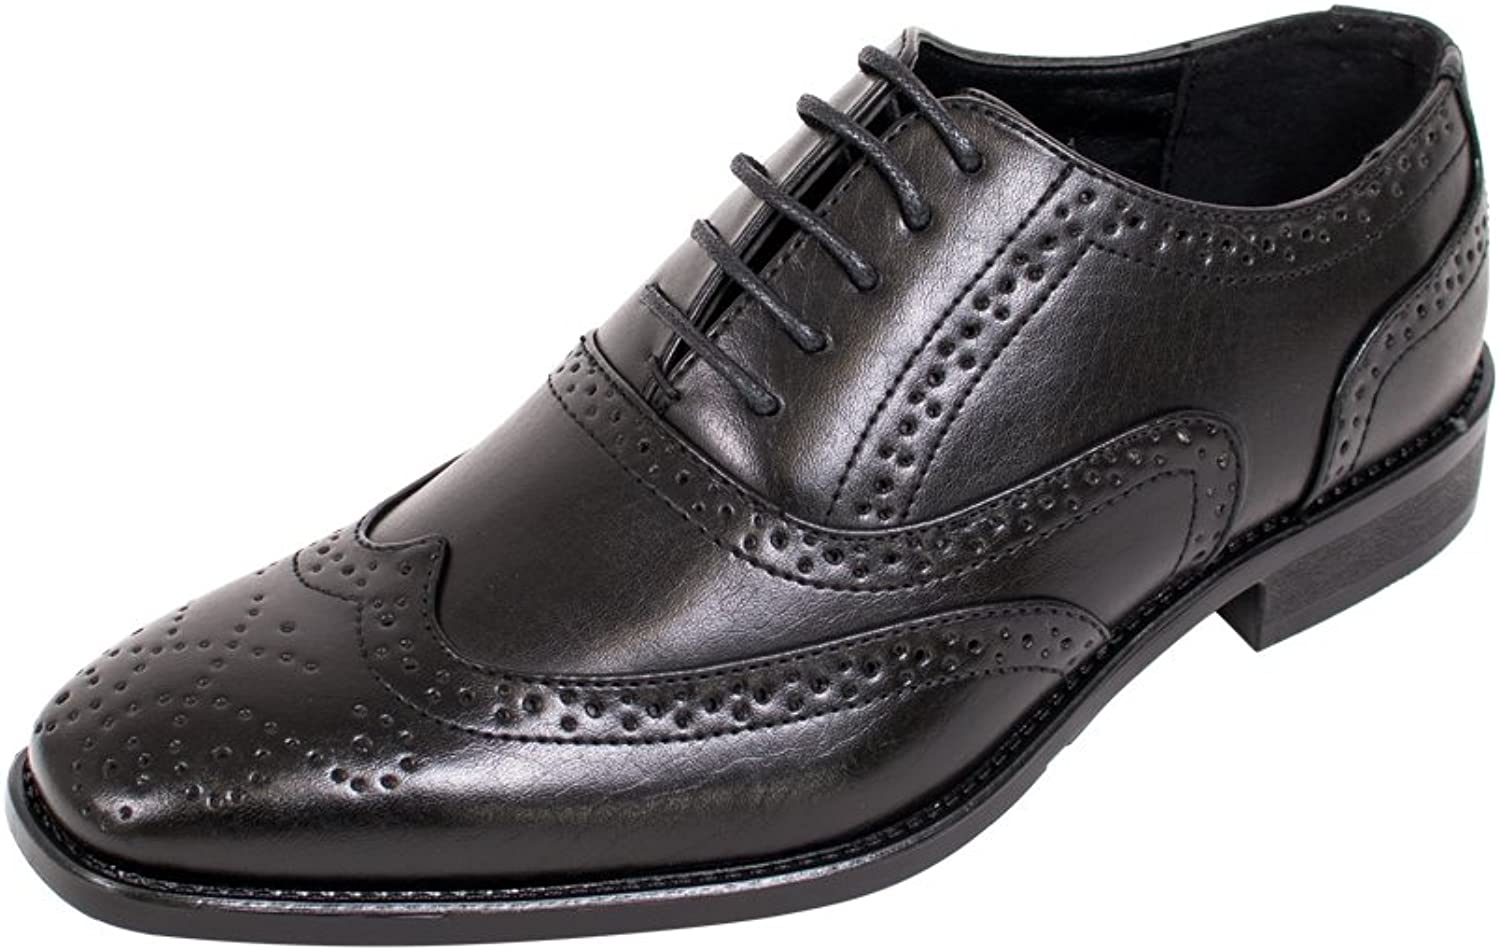 Beverly st Mens Dress shoes Lace Up Brogue Medallion Wing Tip Oxford